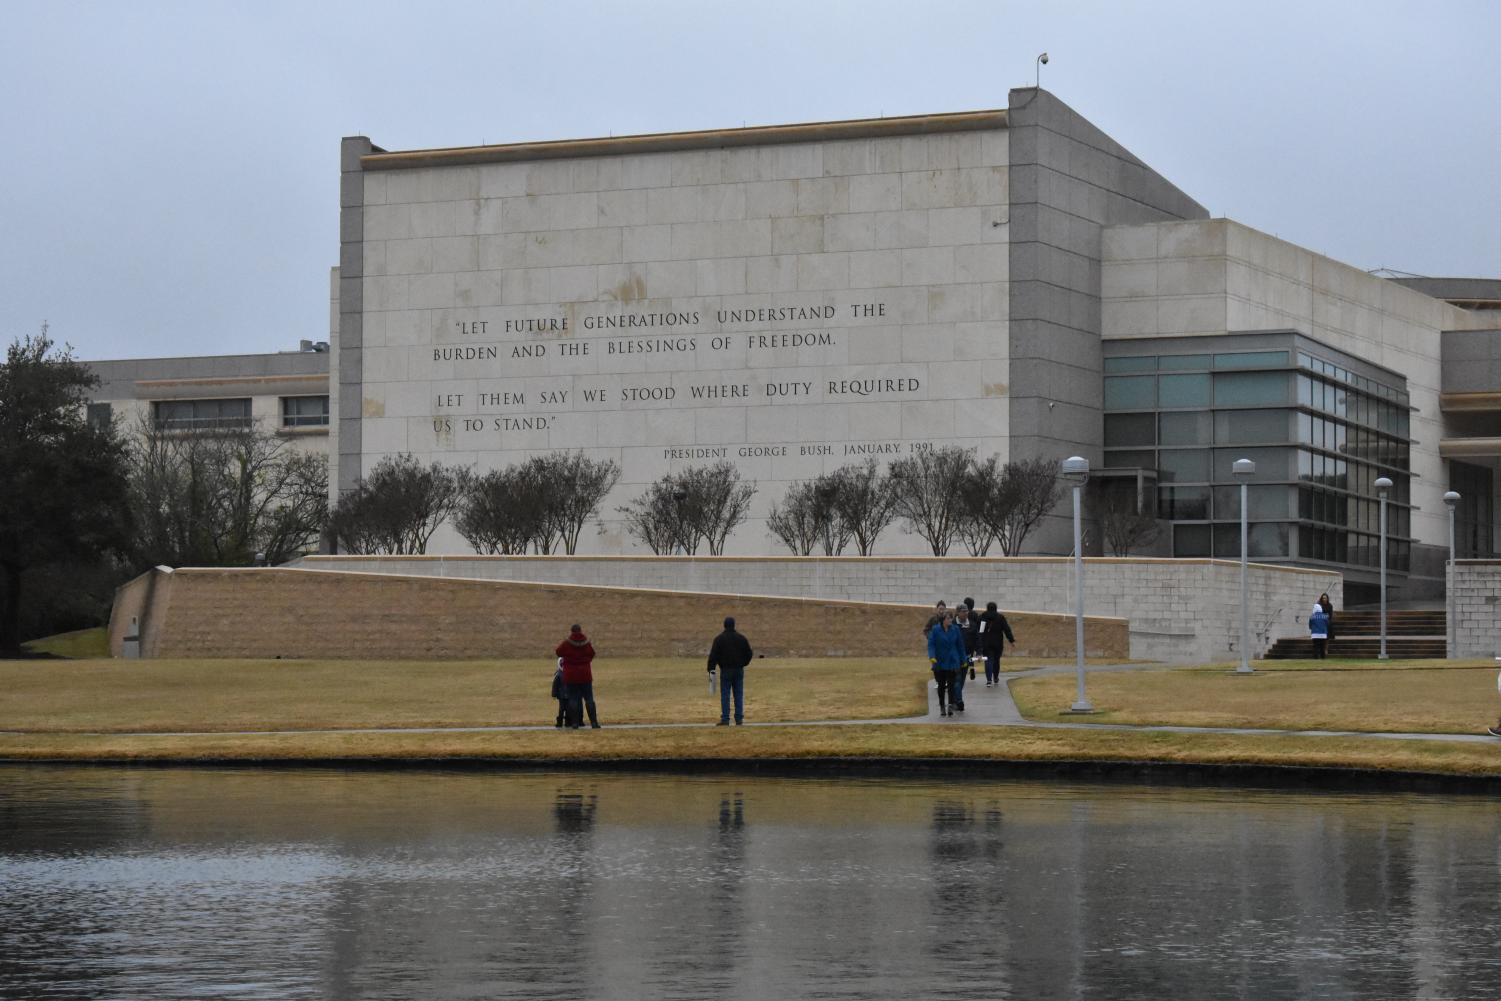 The+George+Bush+Presidential+Library